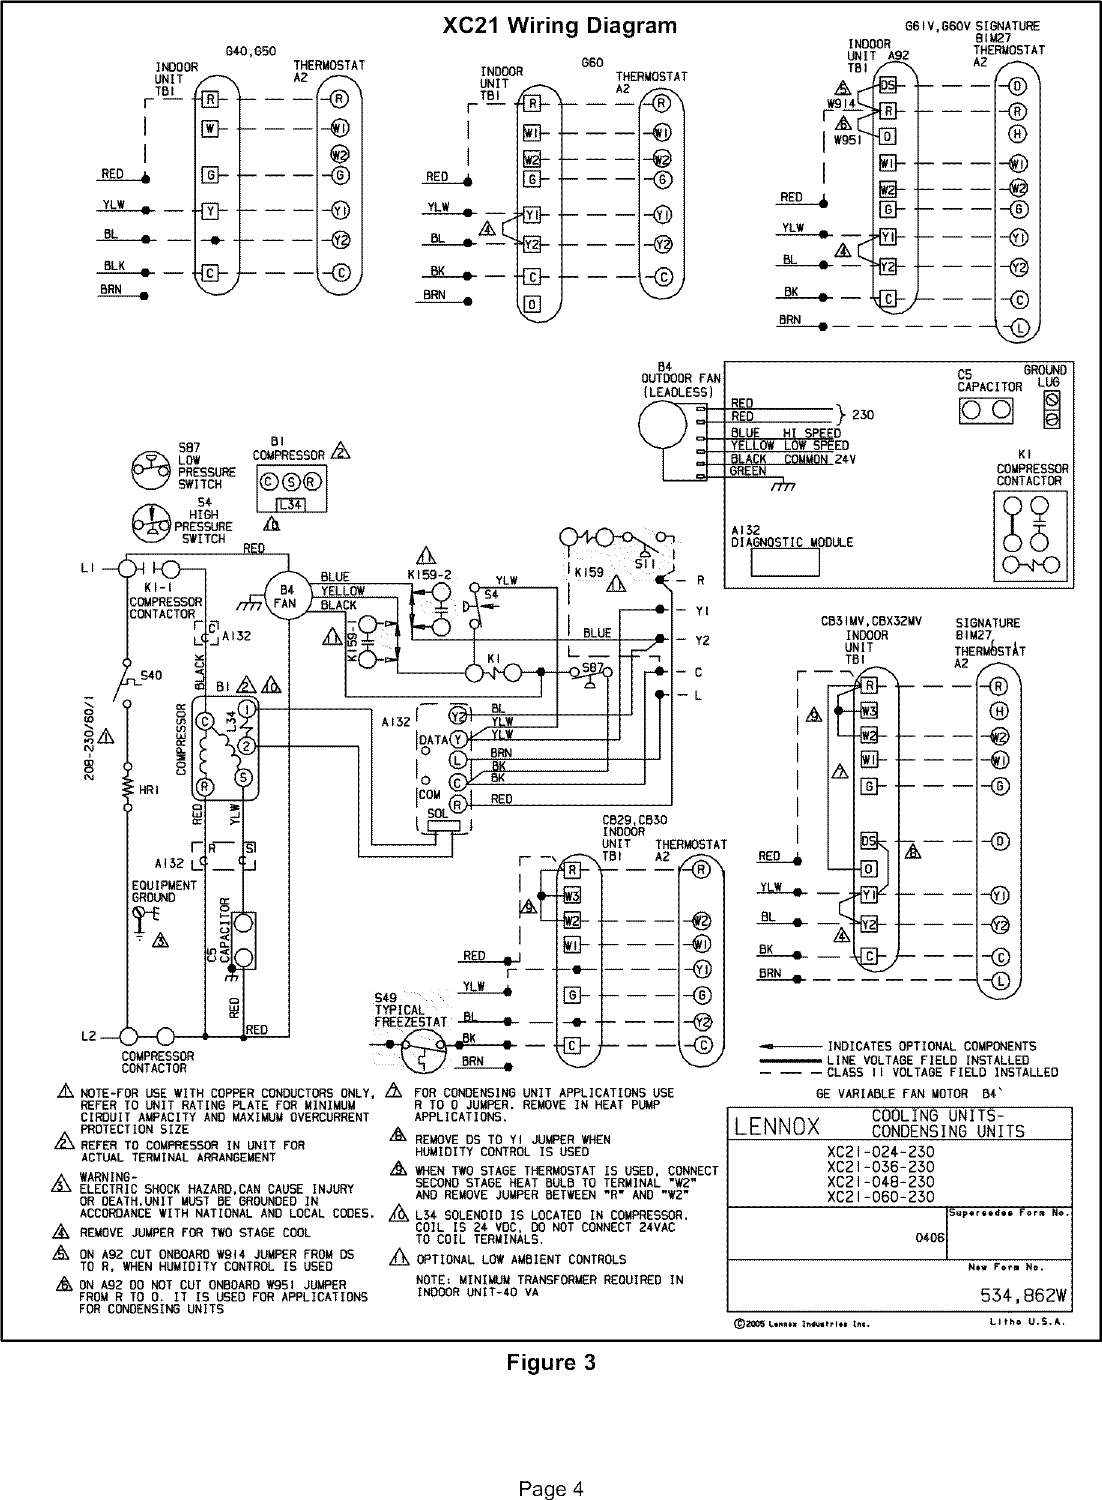 lennox xc21 wiring diagram   26 wiring diagram images